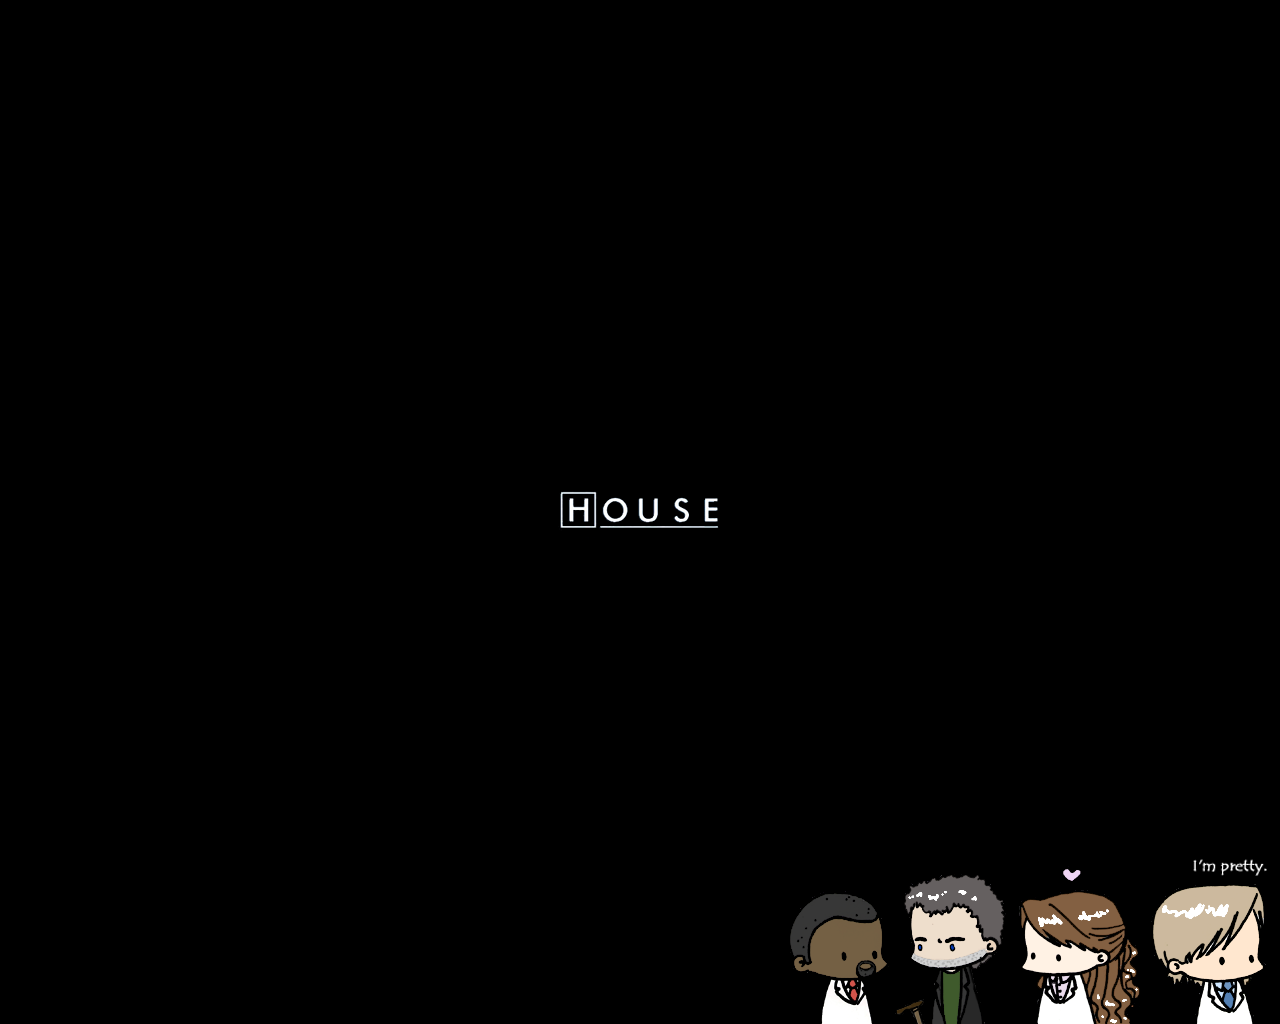 house-chibi-wallpaper2.png